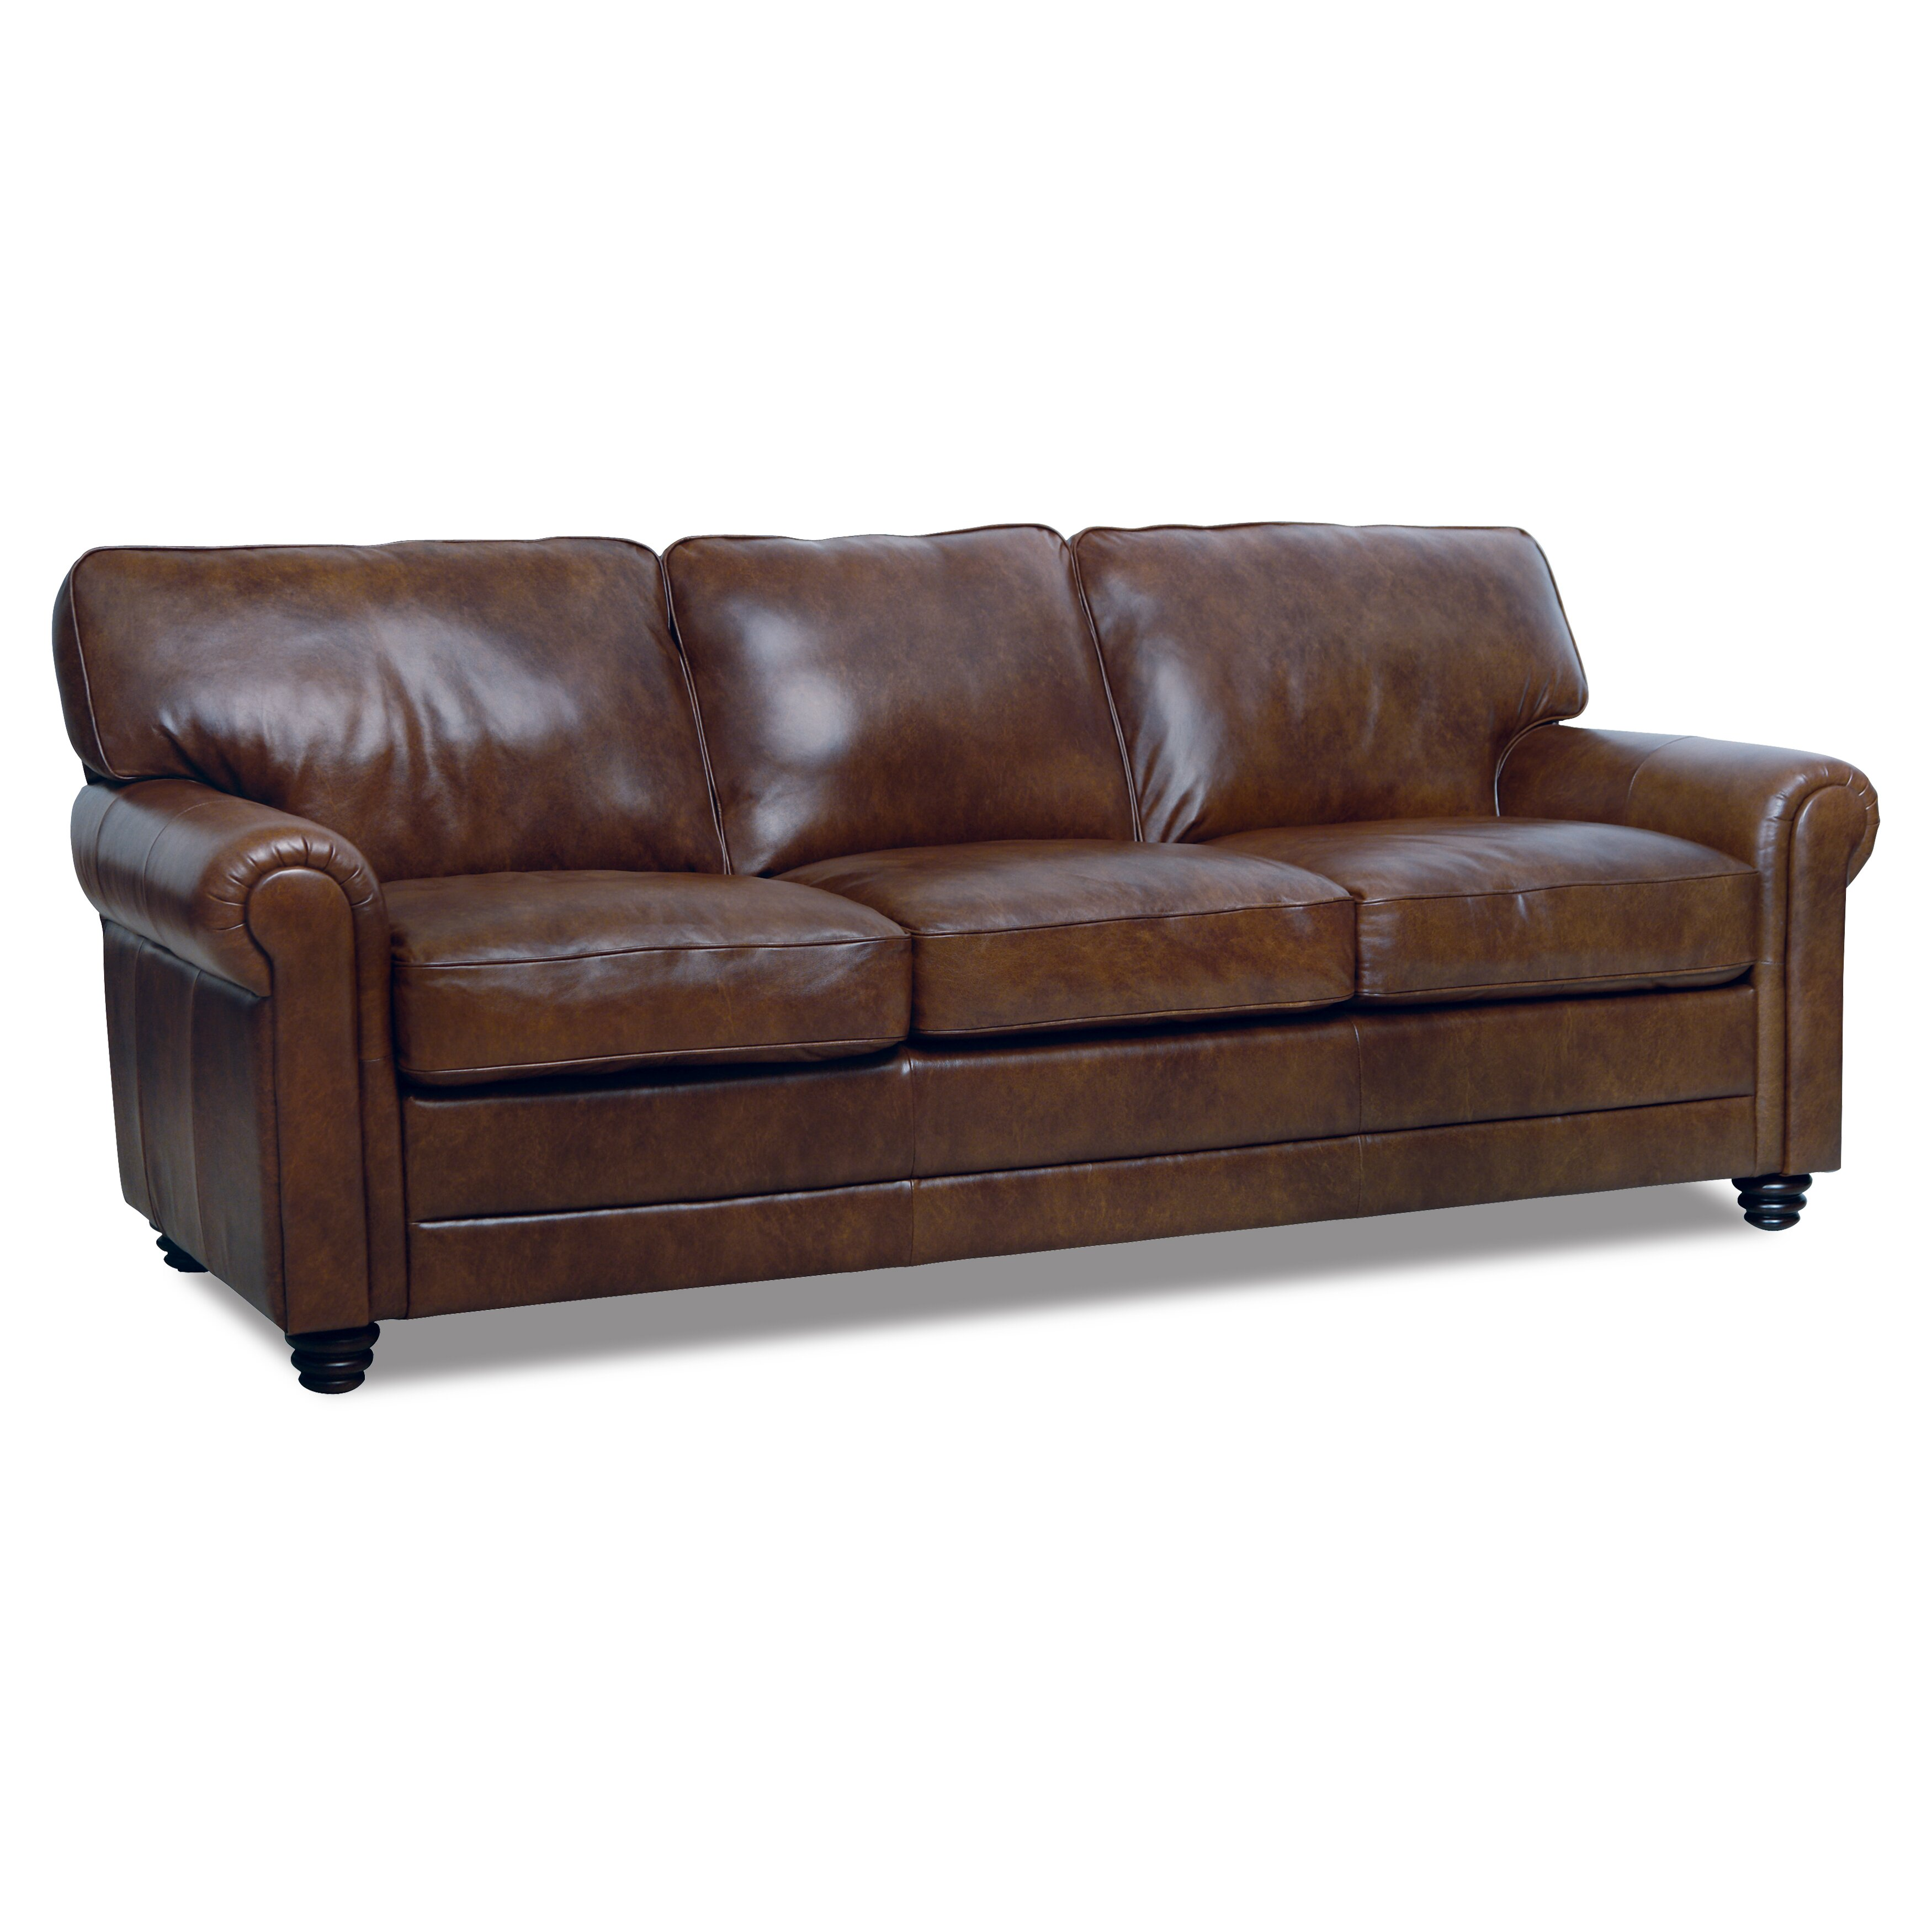 Canora grey clairsville leather sofa reviews wayfair for Leather sofa reviews